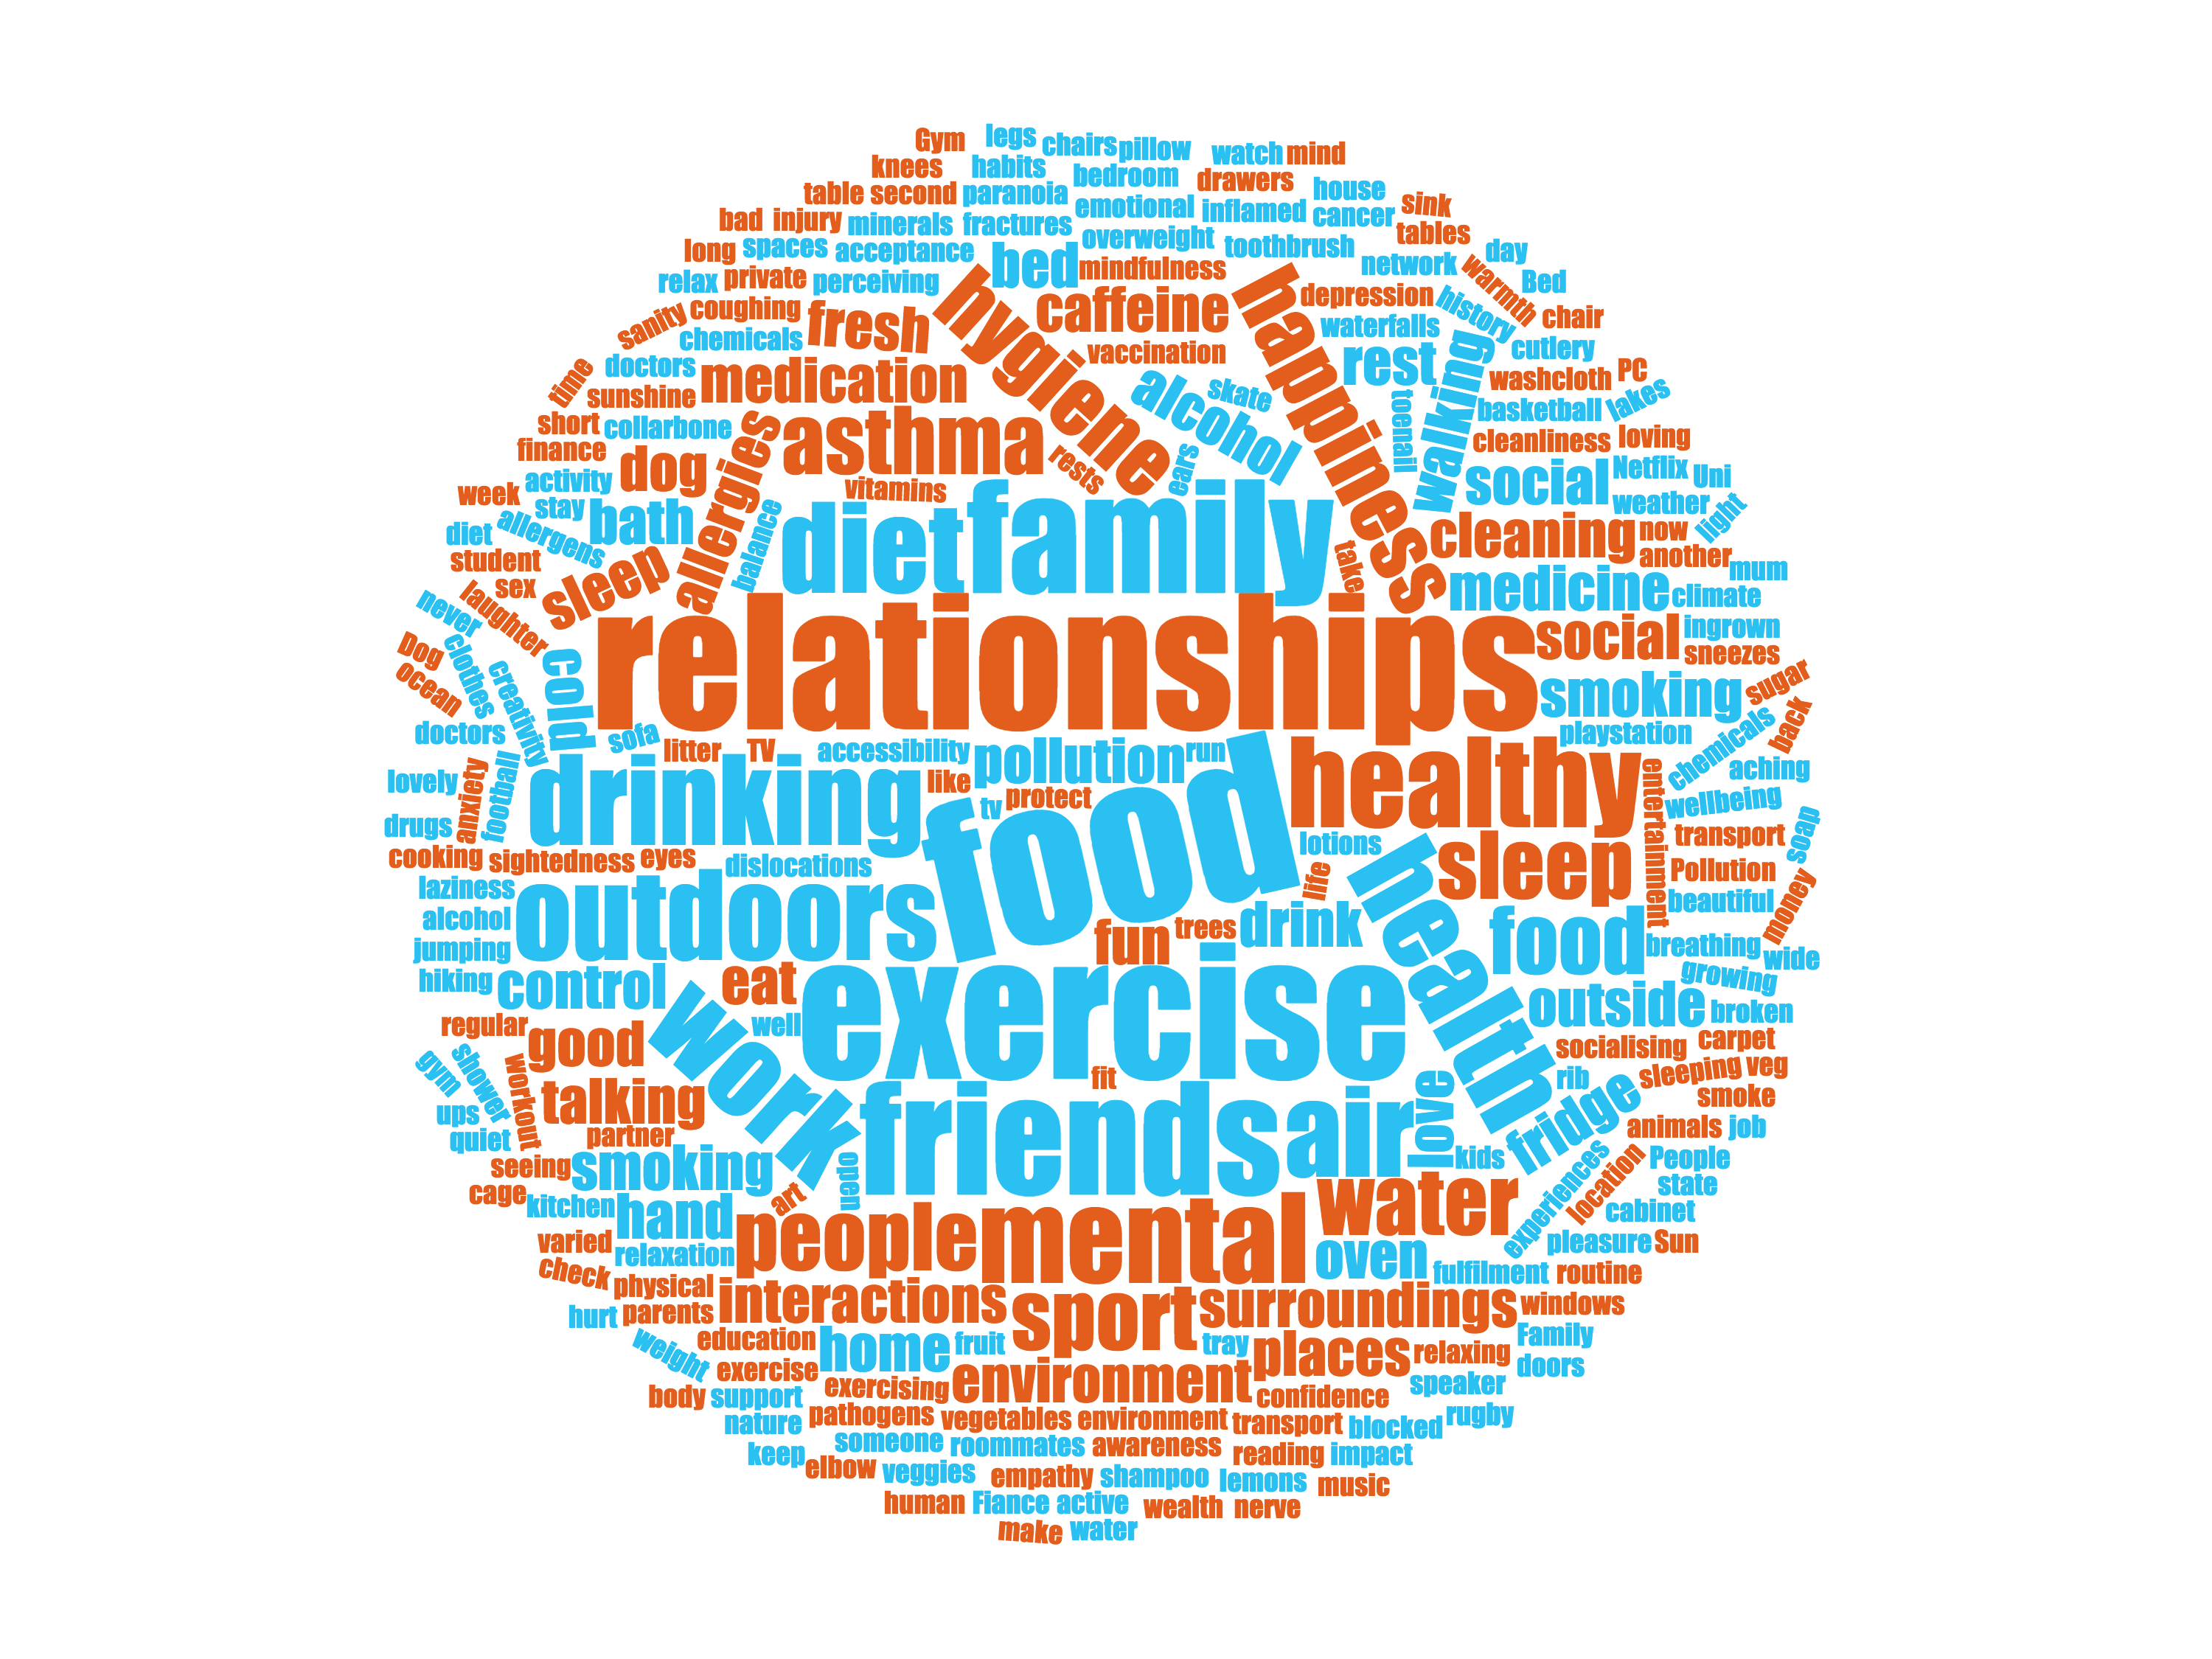 A word cloud generated from participants responses